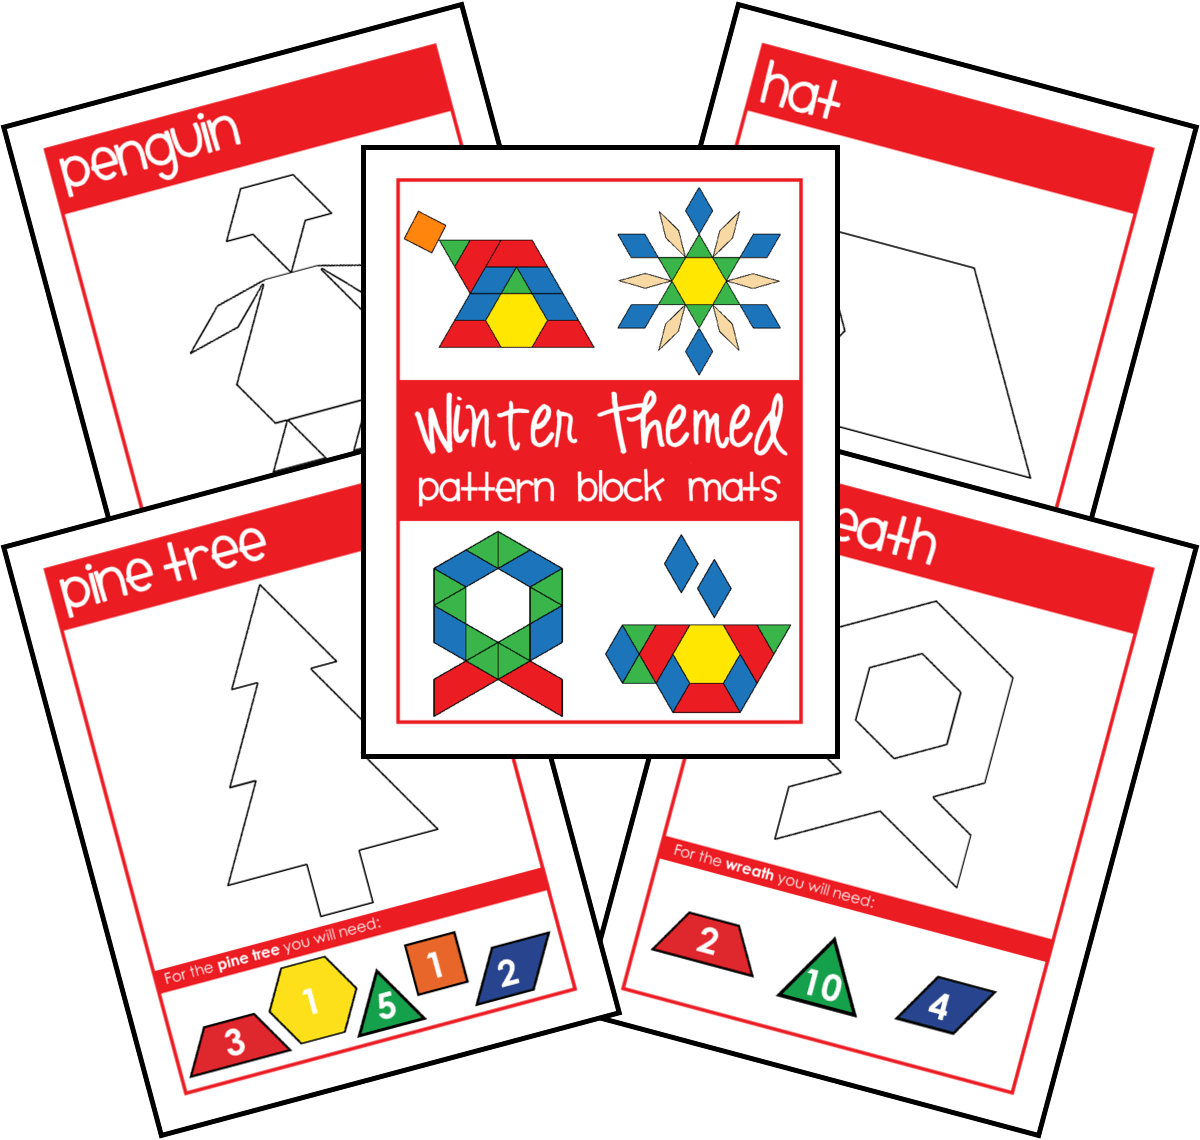 Make Unique Tangram Patterns On Vibrant Printable Block Mats